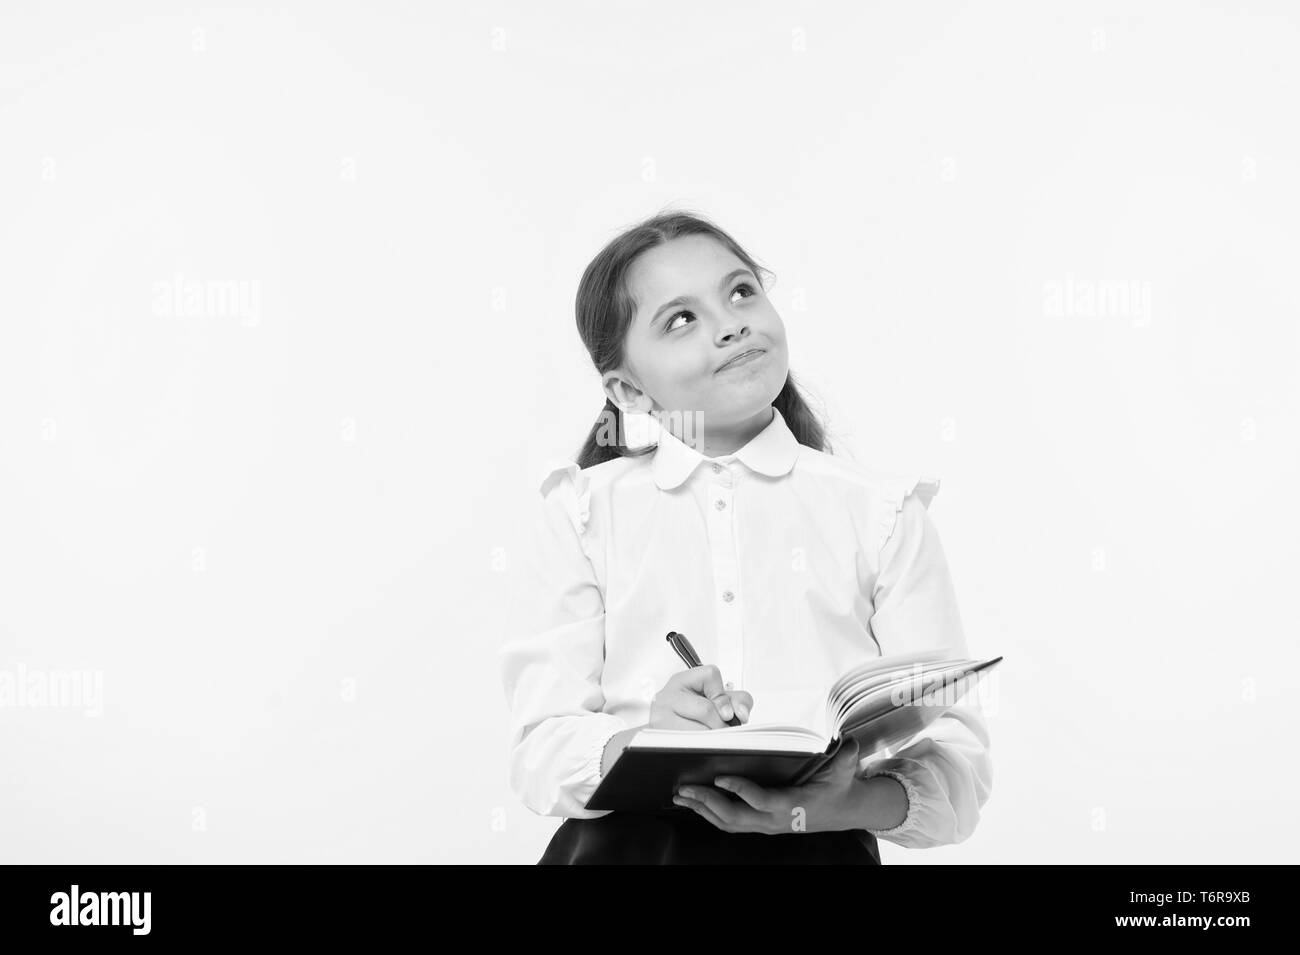 Child school uniform kid doing homework. Child girl school uniform clothes hold book and pen. Girl cute write down idea notes. Notes to remember. Write essay or notes. Personal schedule. Making notes. - Stock Image